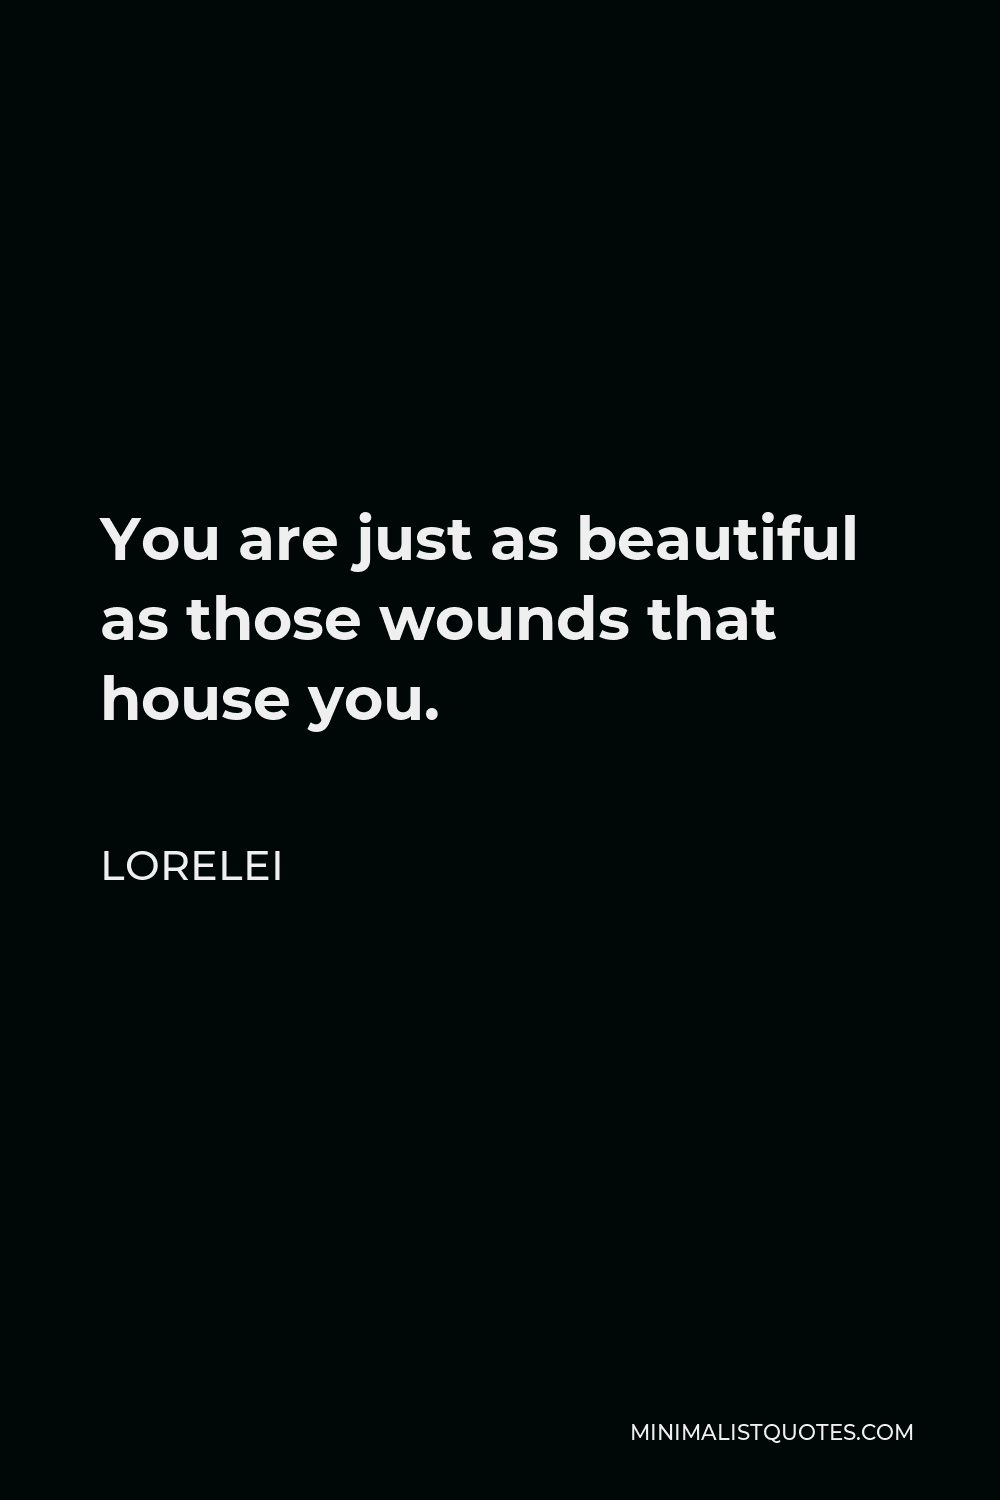 Lorelei Quote - You are just as beautiful as those wounds that house you.